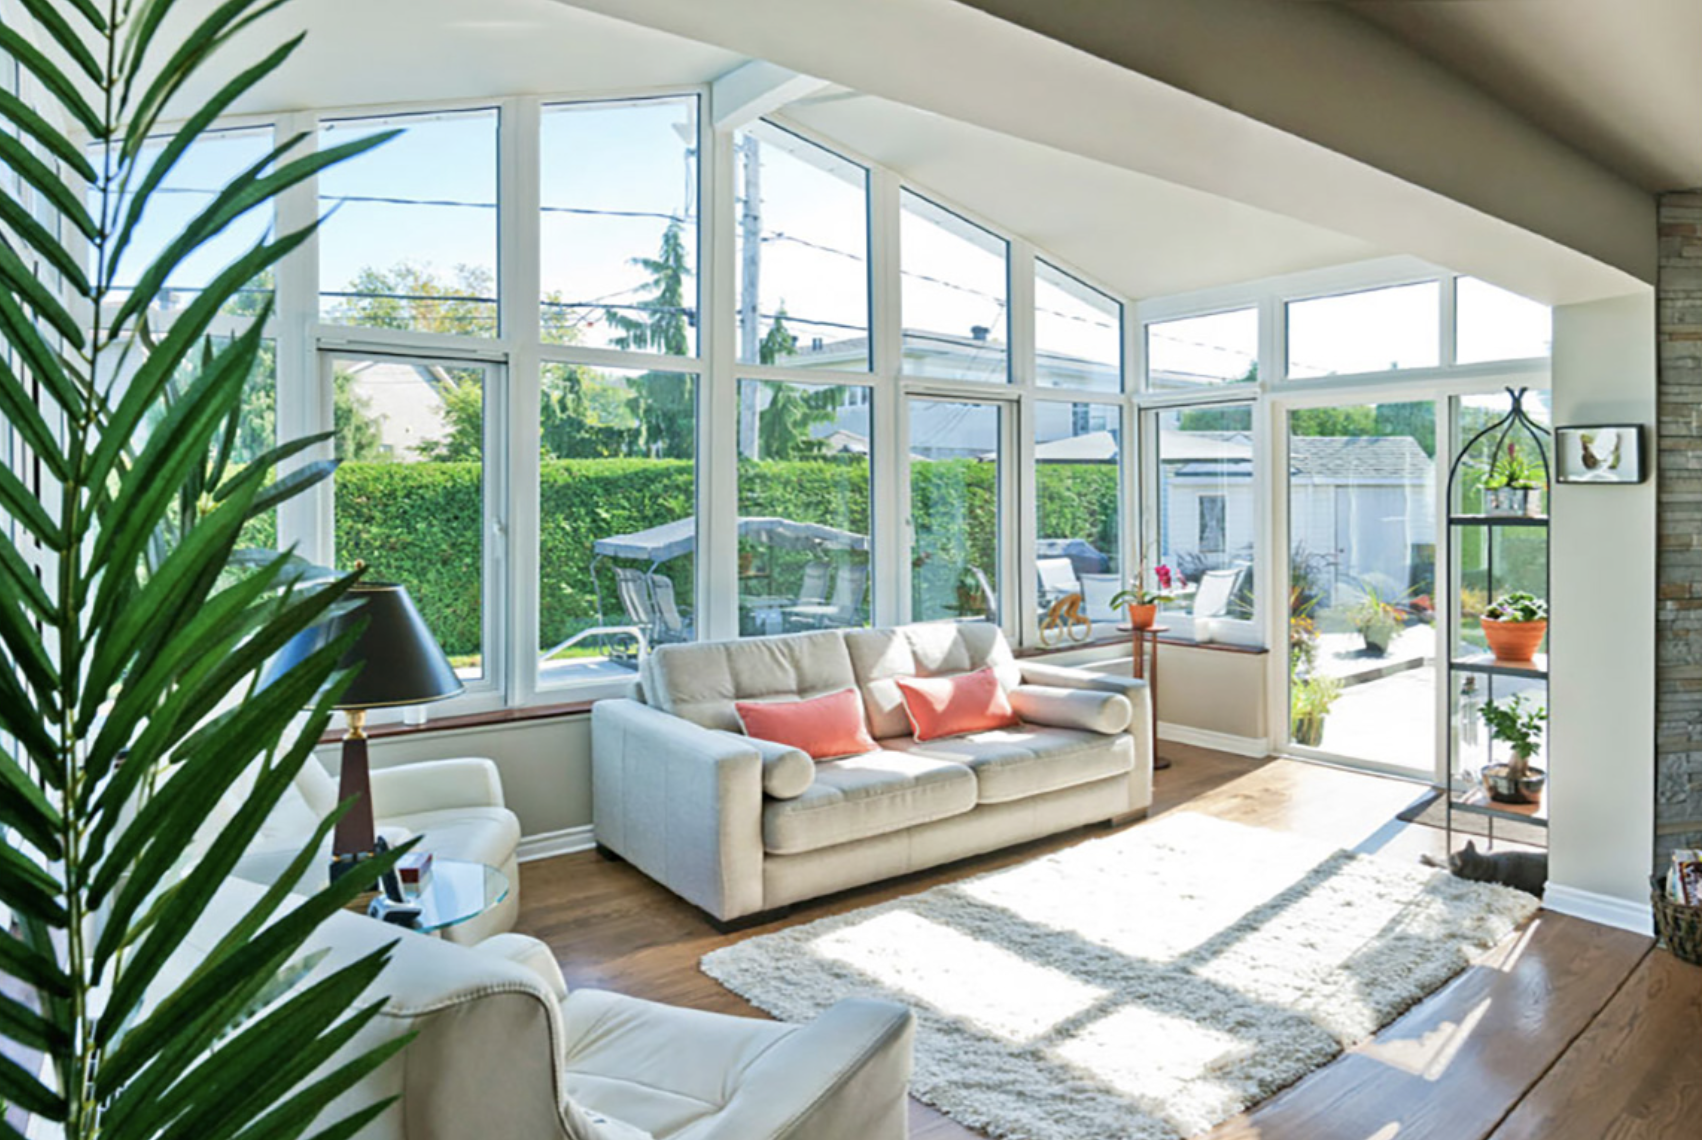 Four Season Sunroom as part of the home